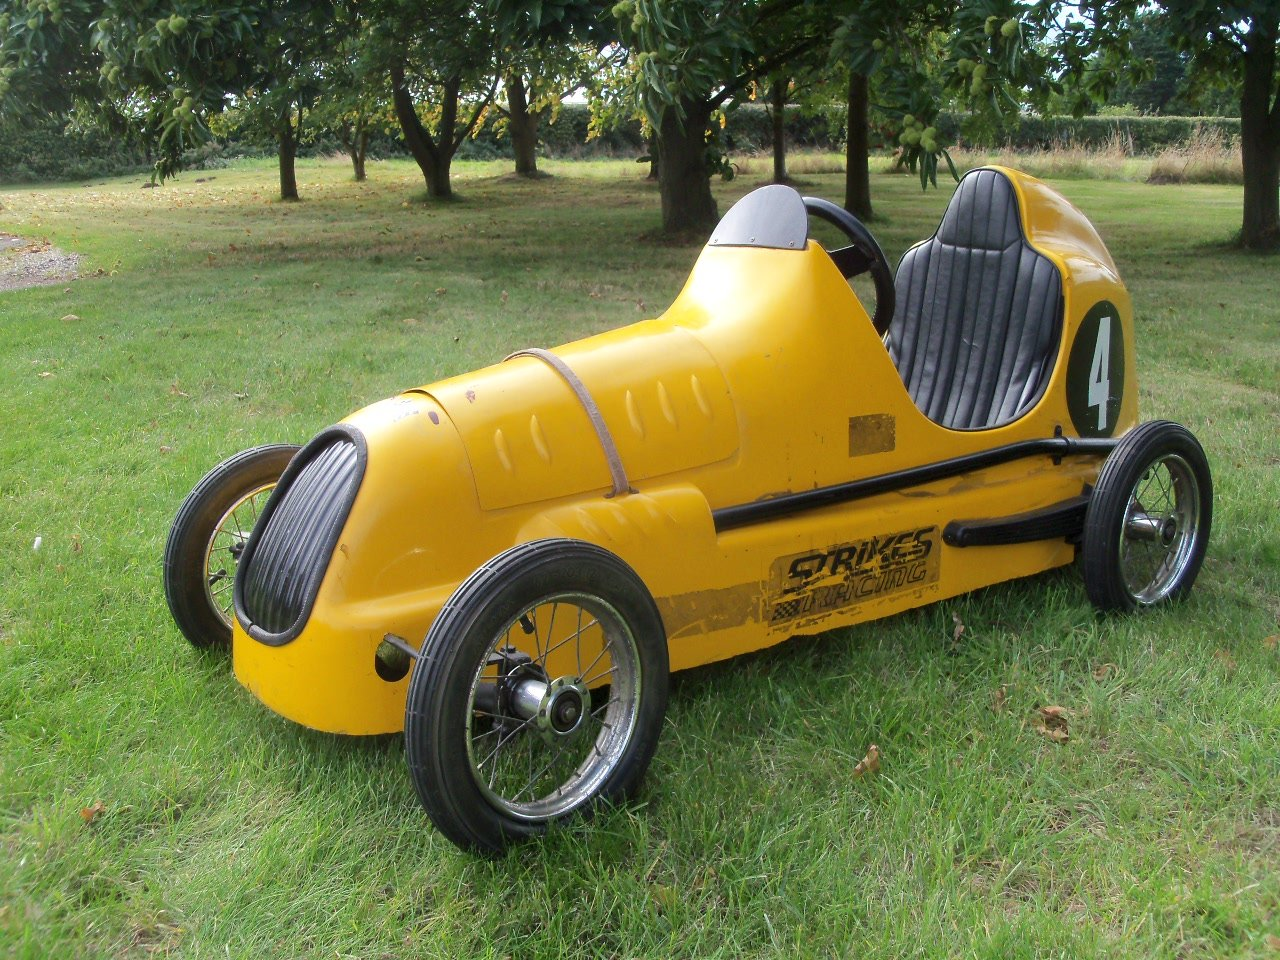 Austin Pathfinder Pedal Car (Replica) For Sale (picture 1 of 6)